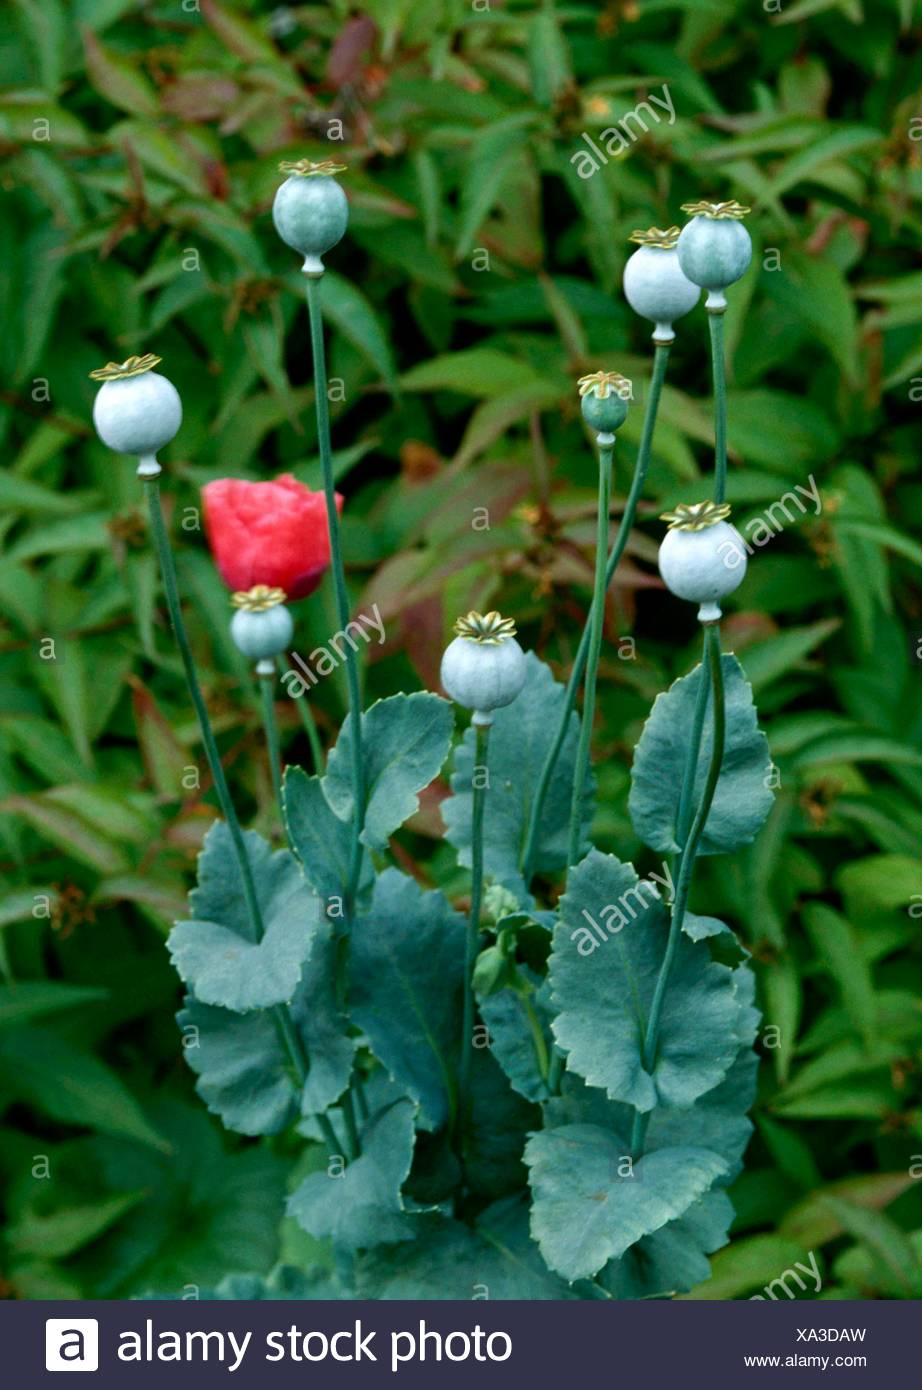 Dried Plants - Poppies (Papavar) seed heads suitable for drying   DRI036749 - Stock Image